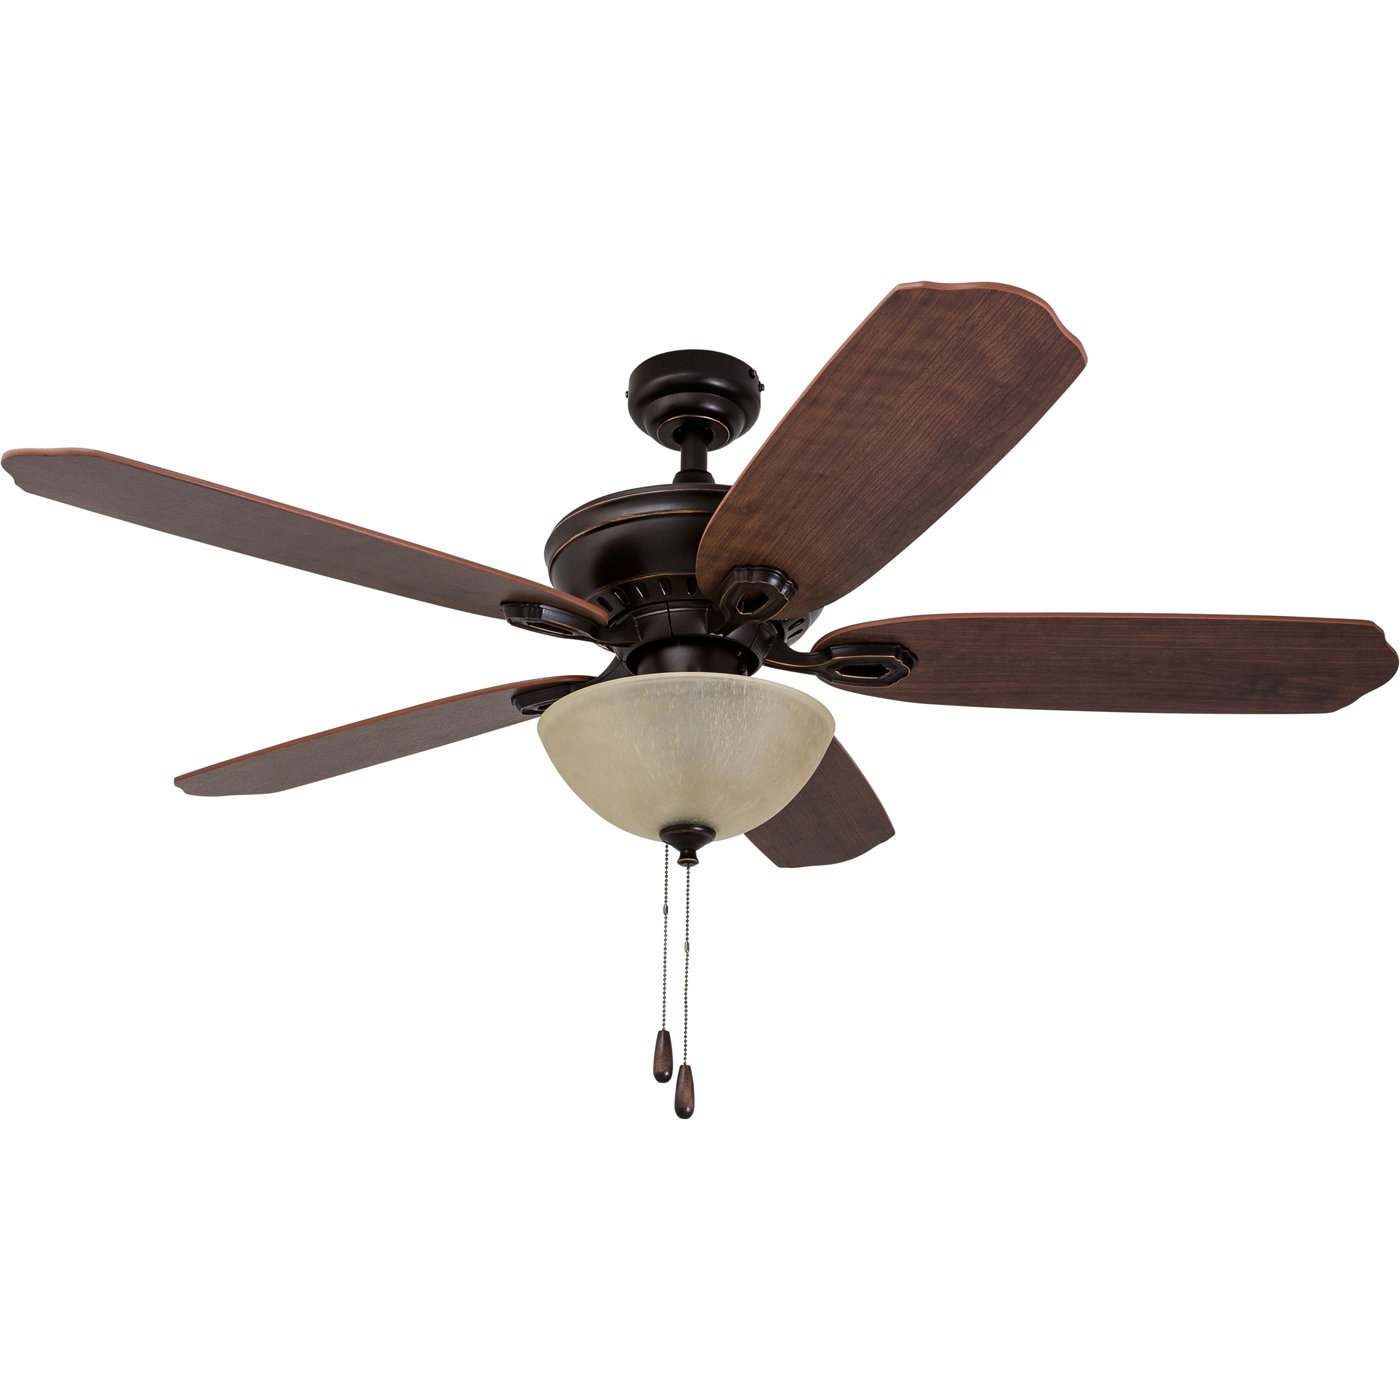 Prominence Home 50334-01 Spring Hollow Ceiling Fan, 52 inches, Reversible Fan Blades, Oil-Rubbed Bronze